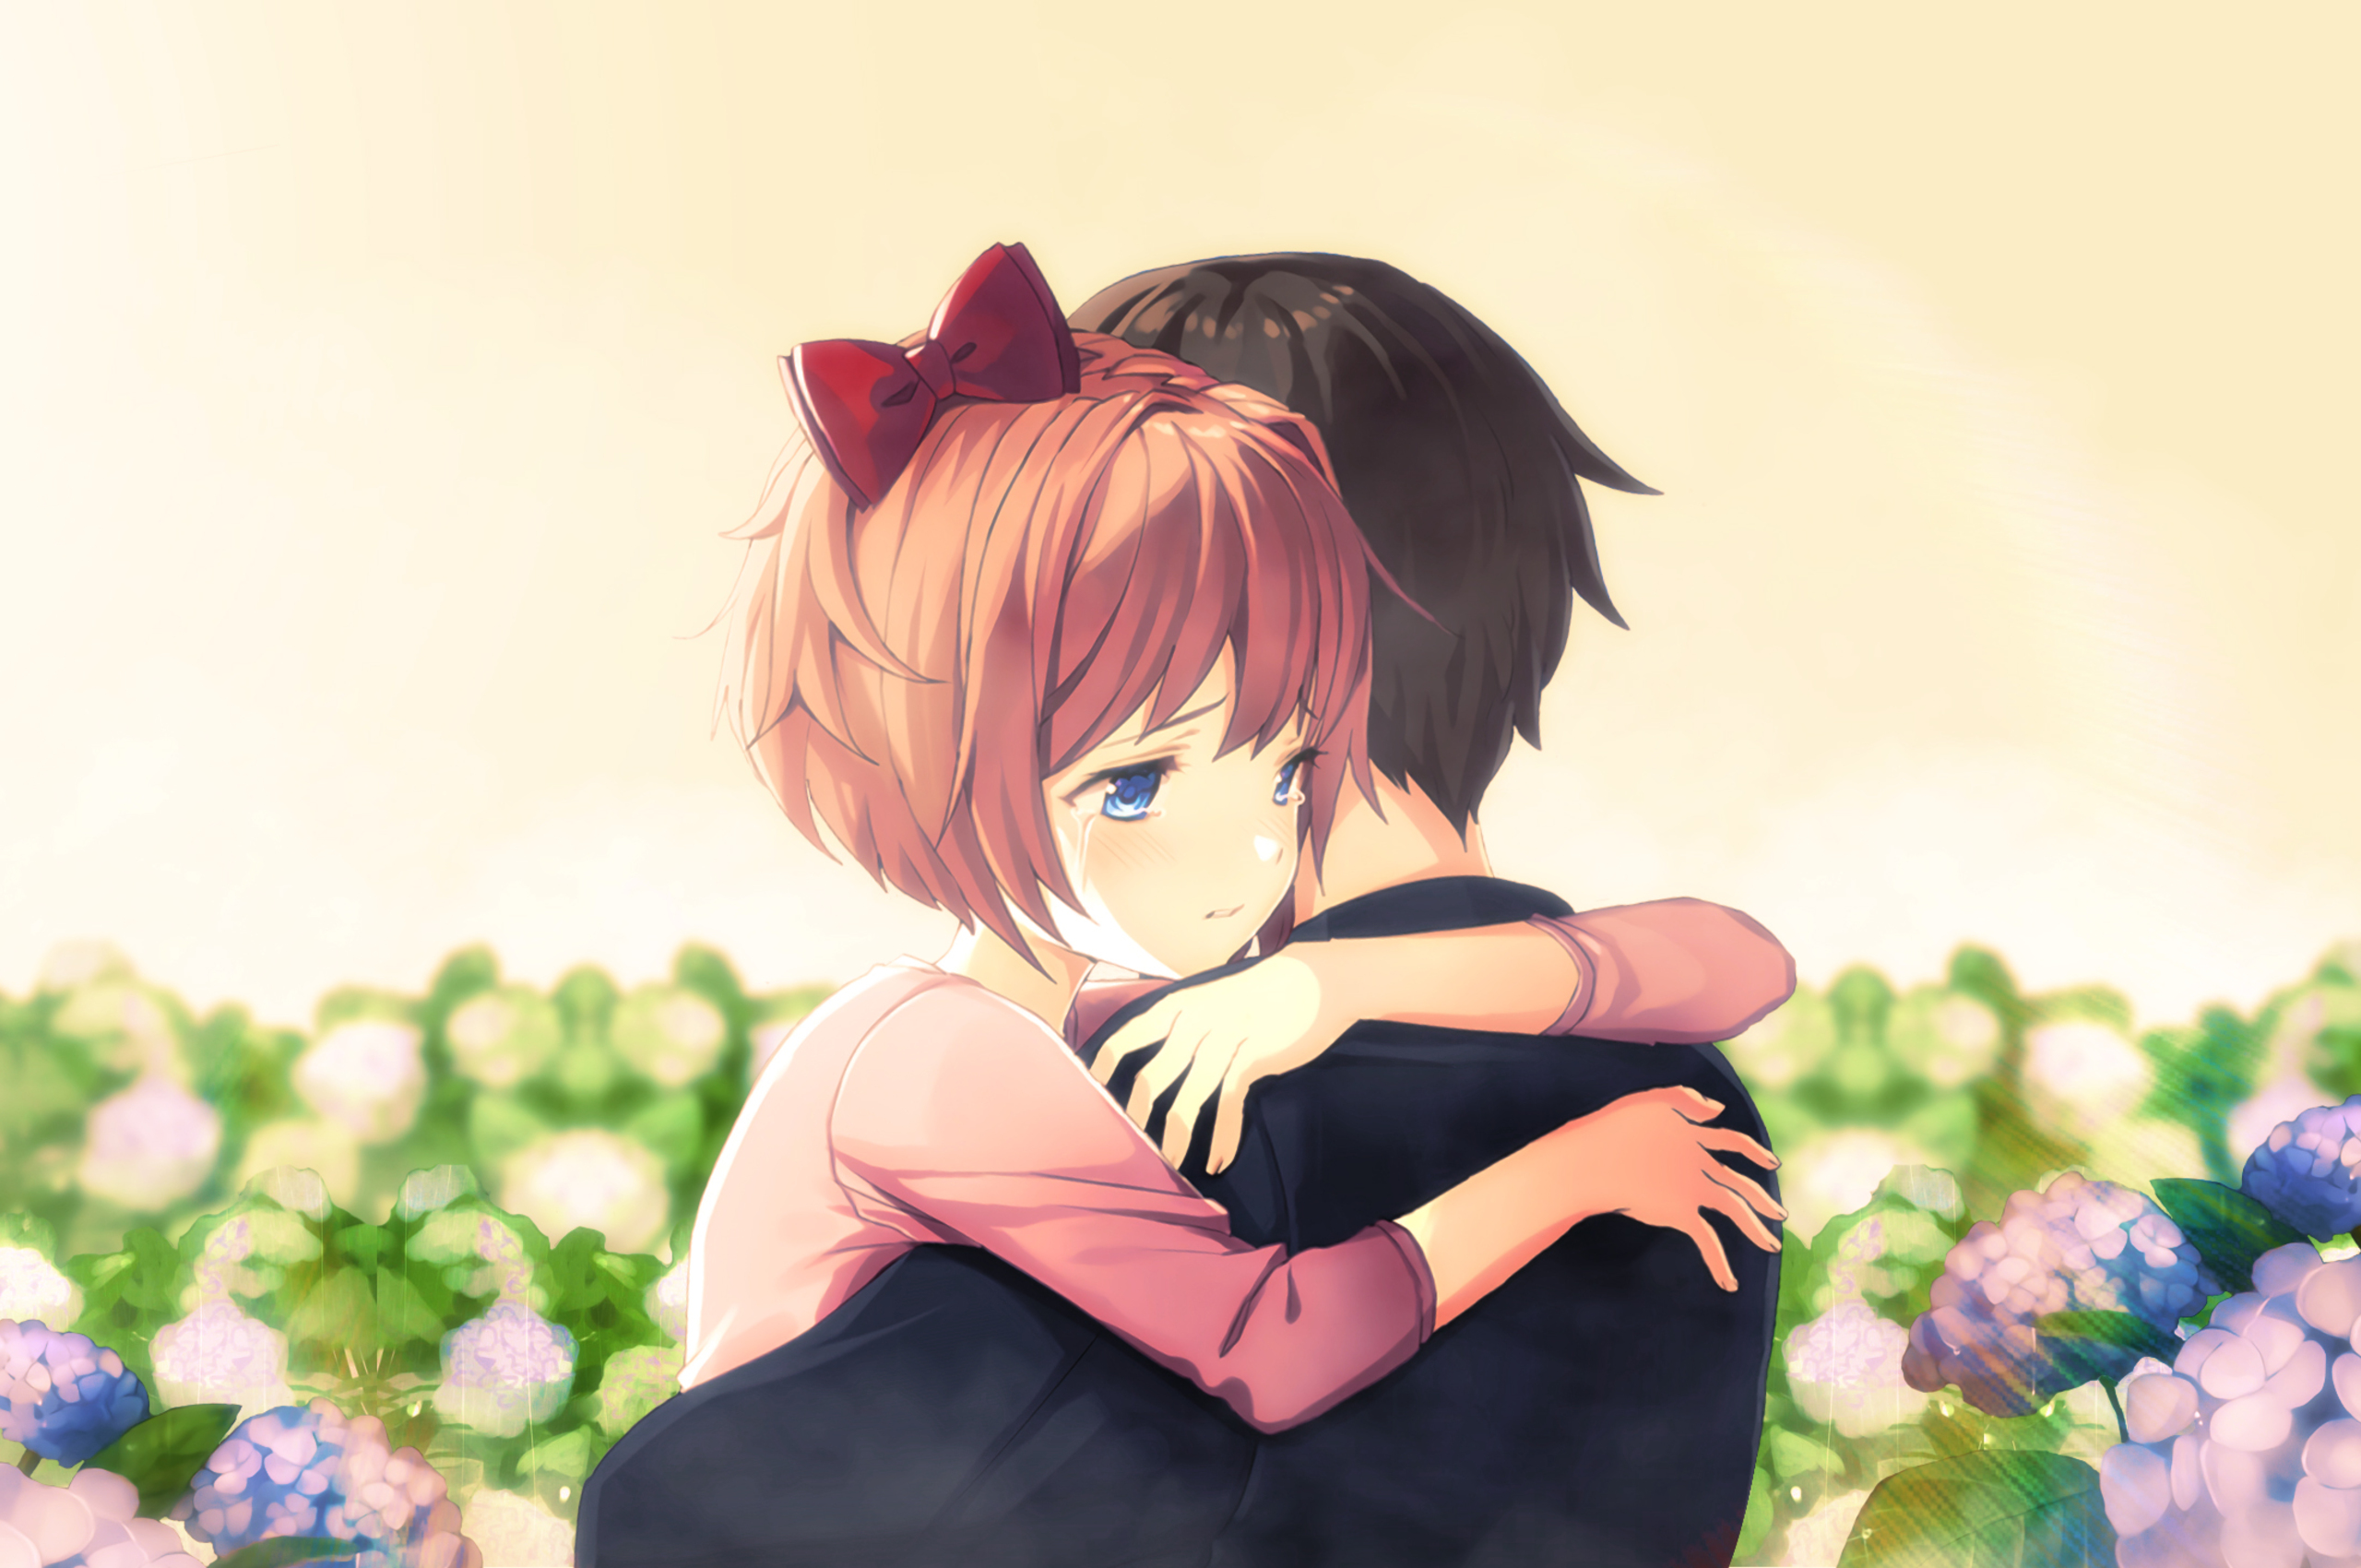 2560x1700 Cute Anime Couple Hug Chromebook Pixel Hd 4k Wallpapers Images Backgrounds Photos And Pictures